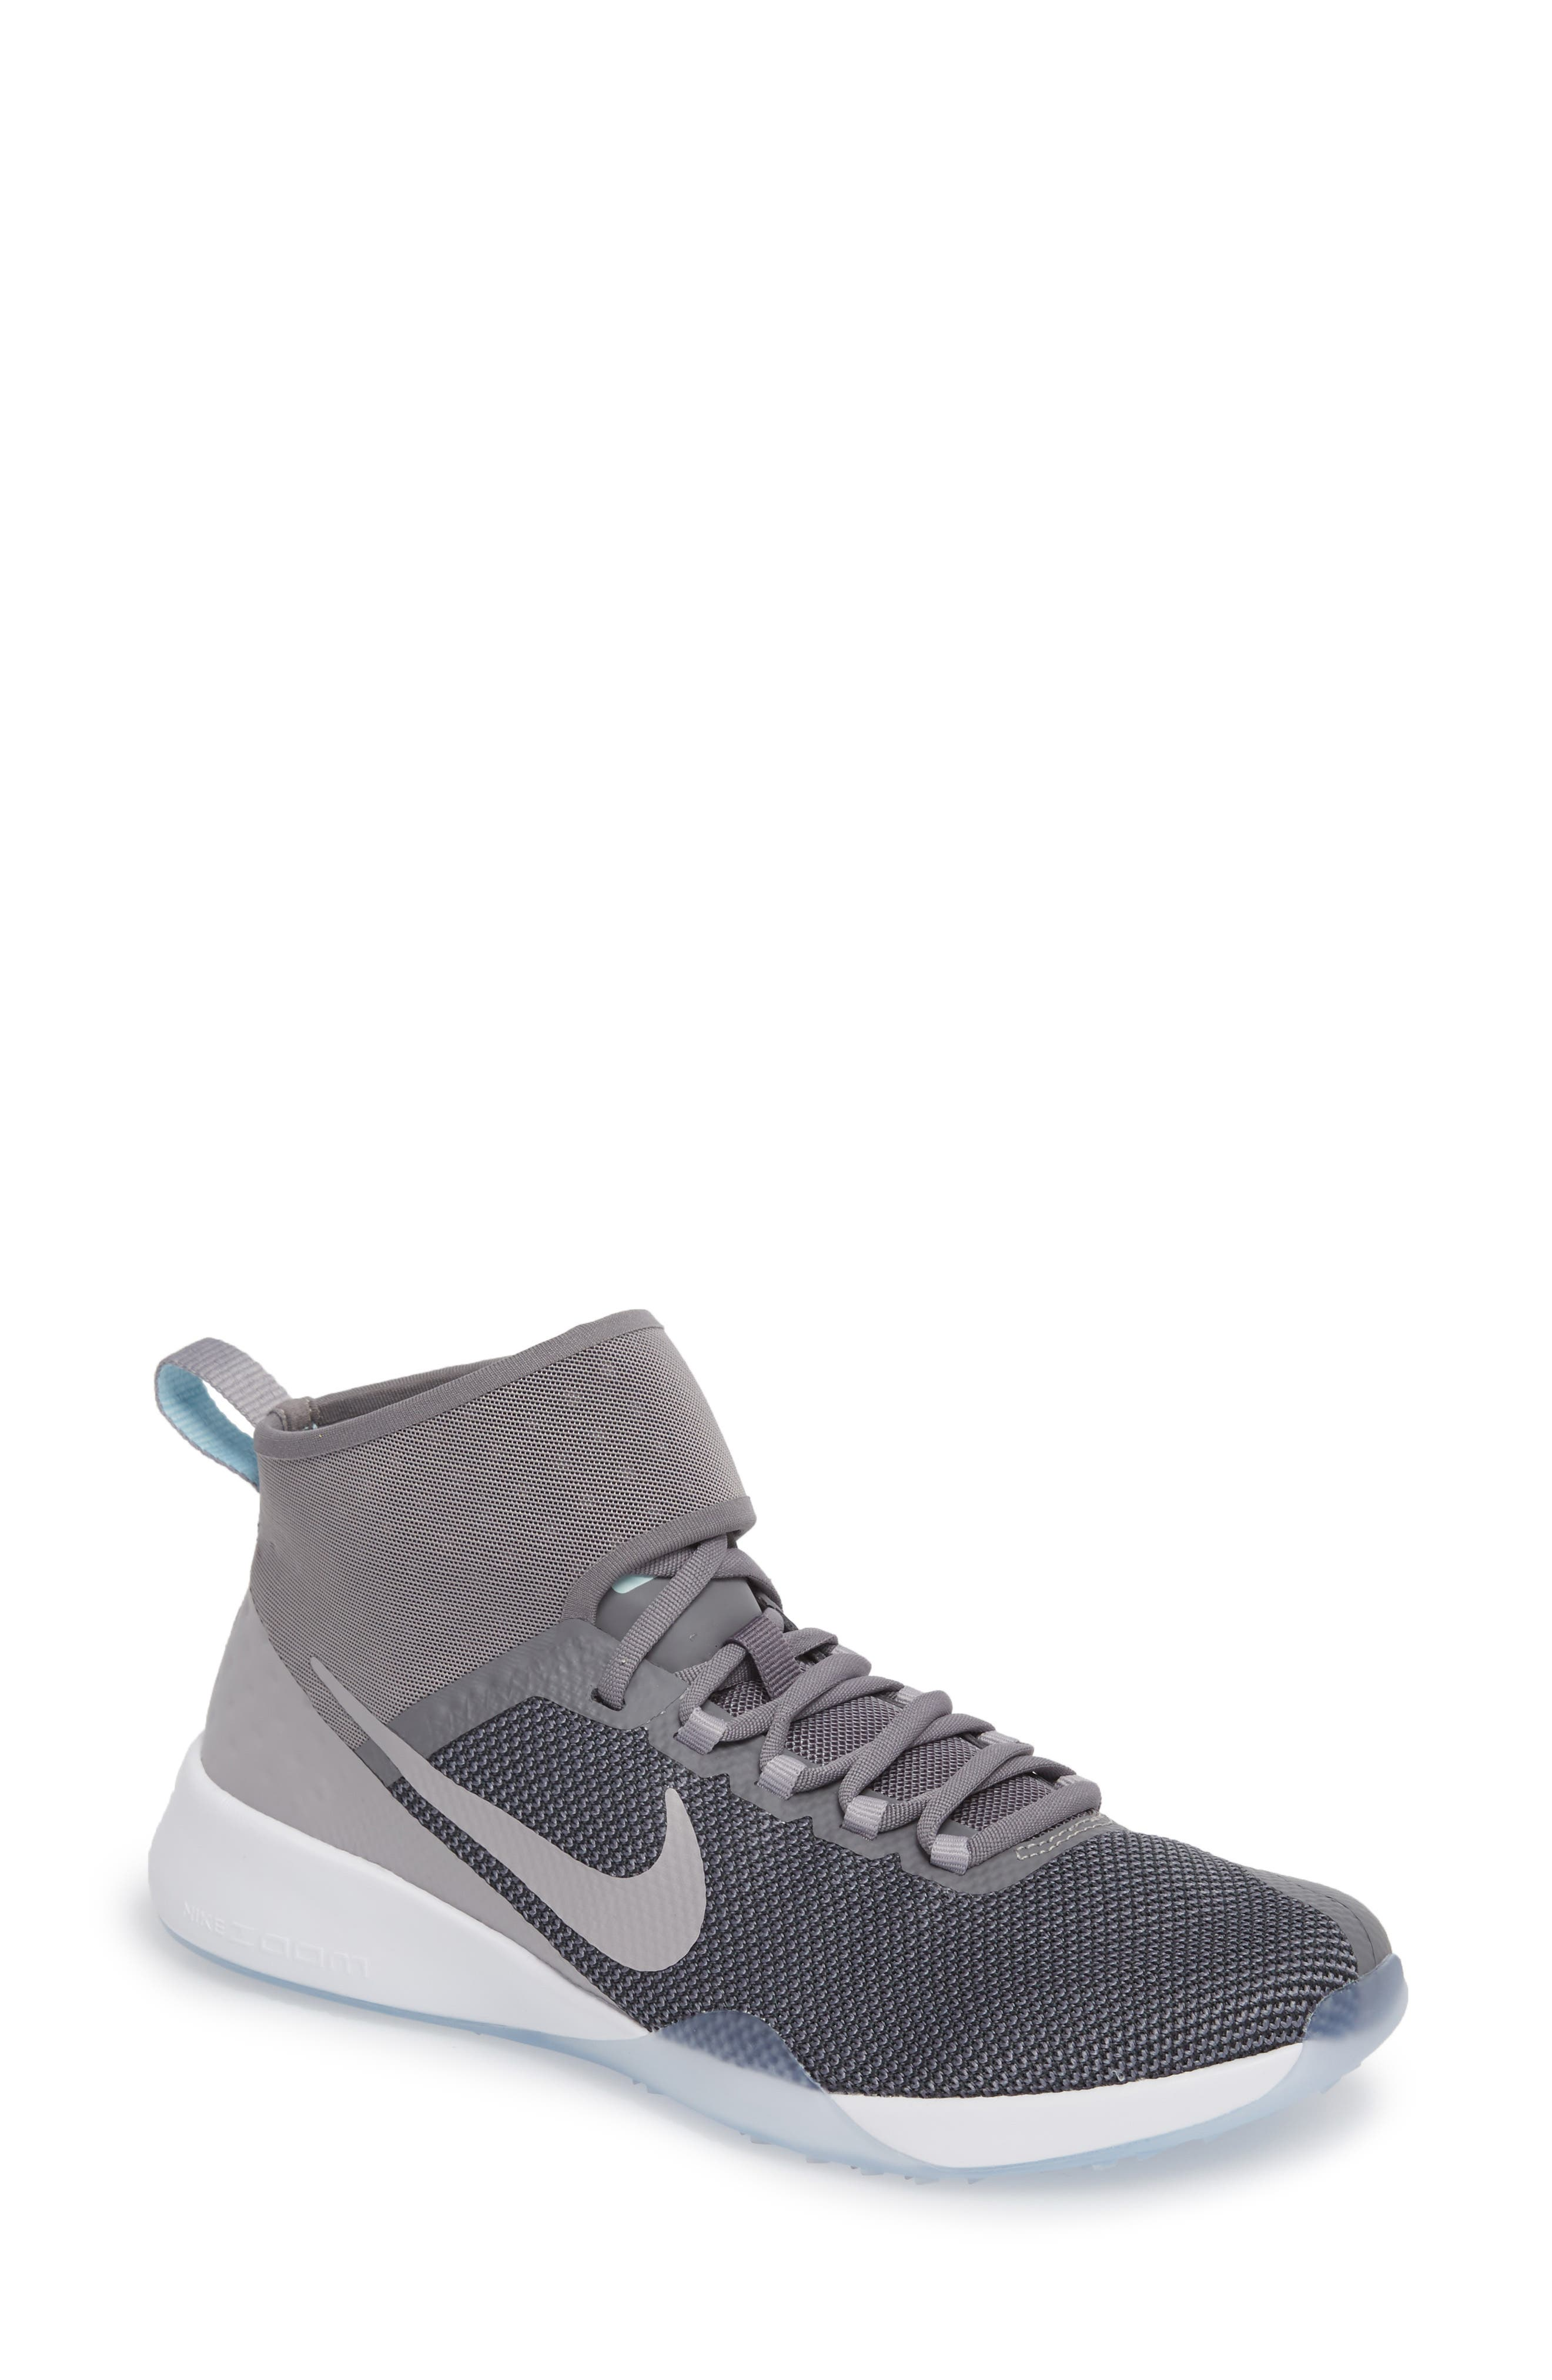 NikeLab Air Zoom Strong 2 Training Shoe,                         Main,                         color,